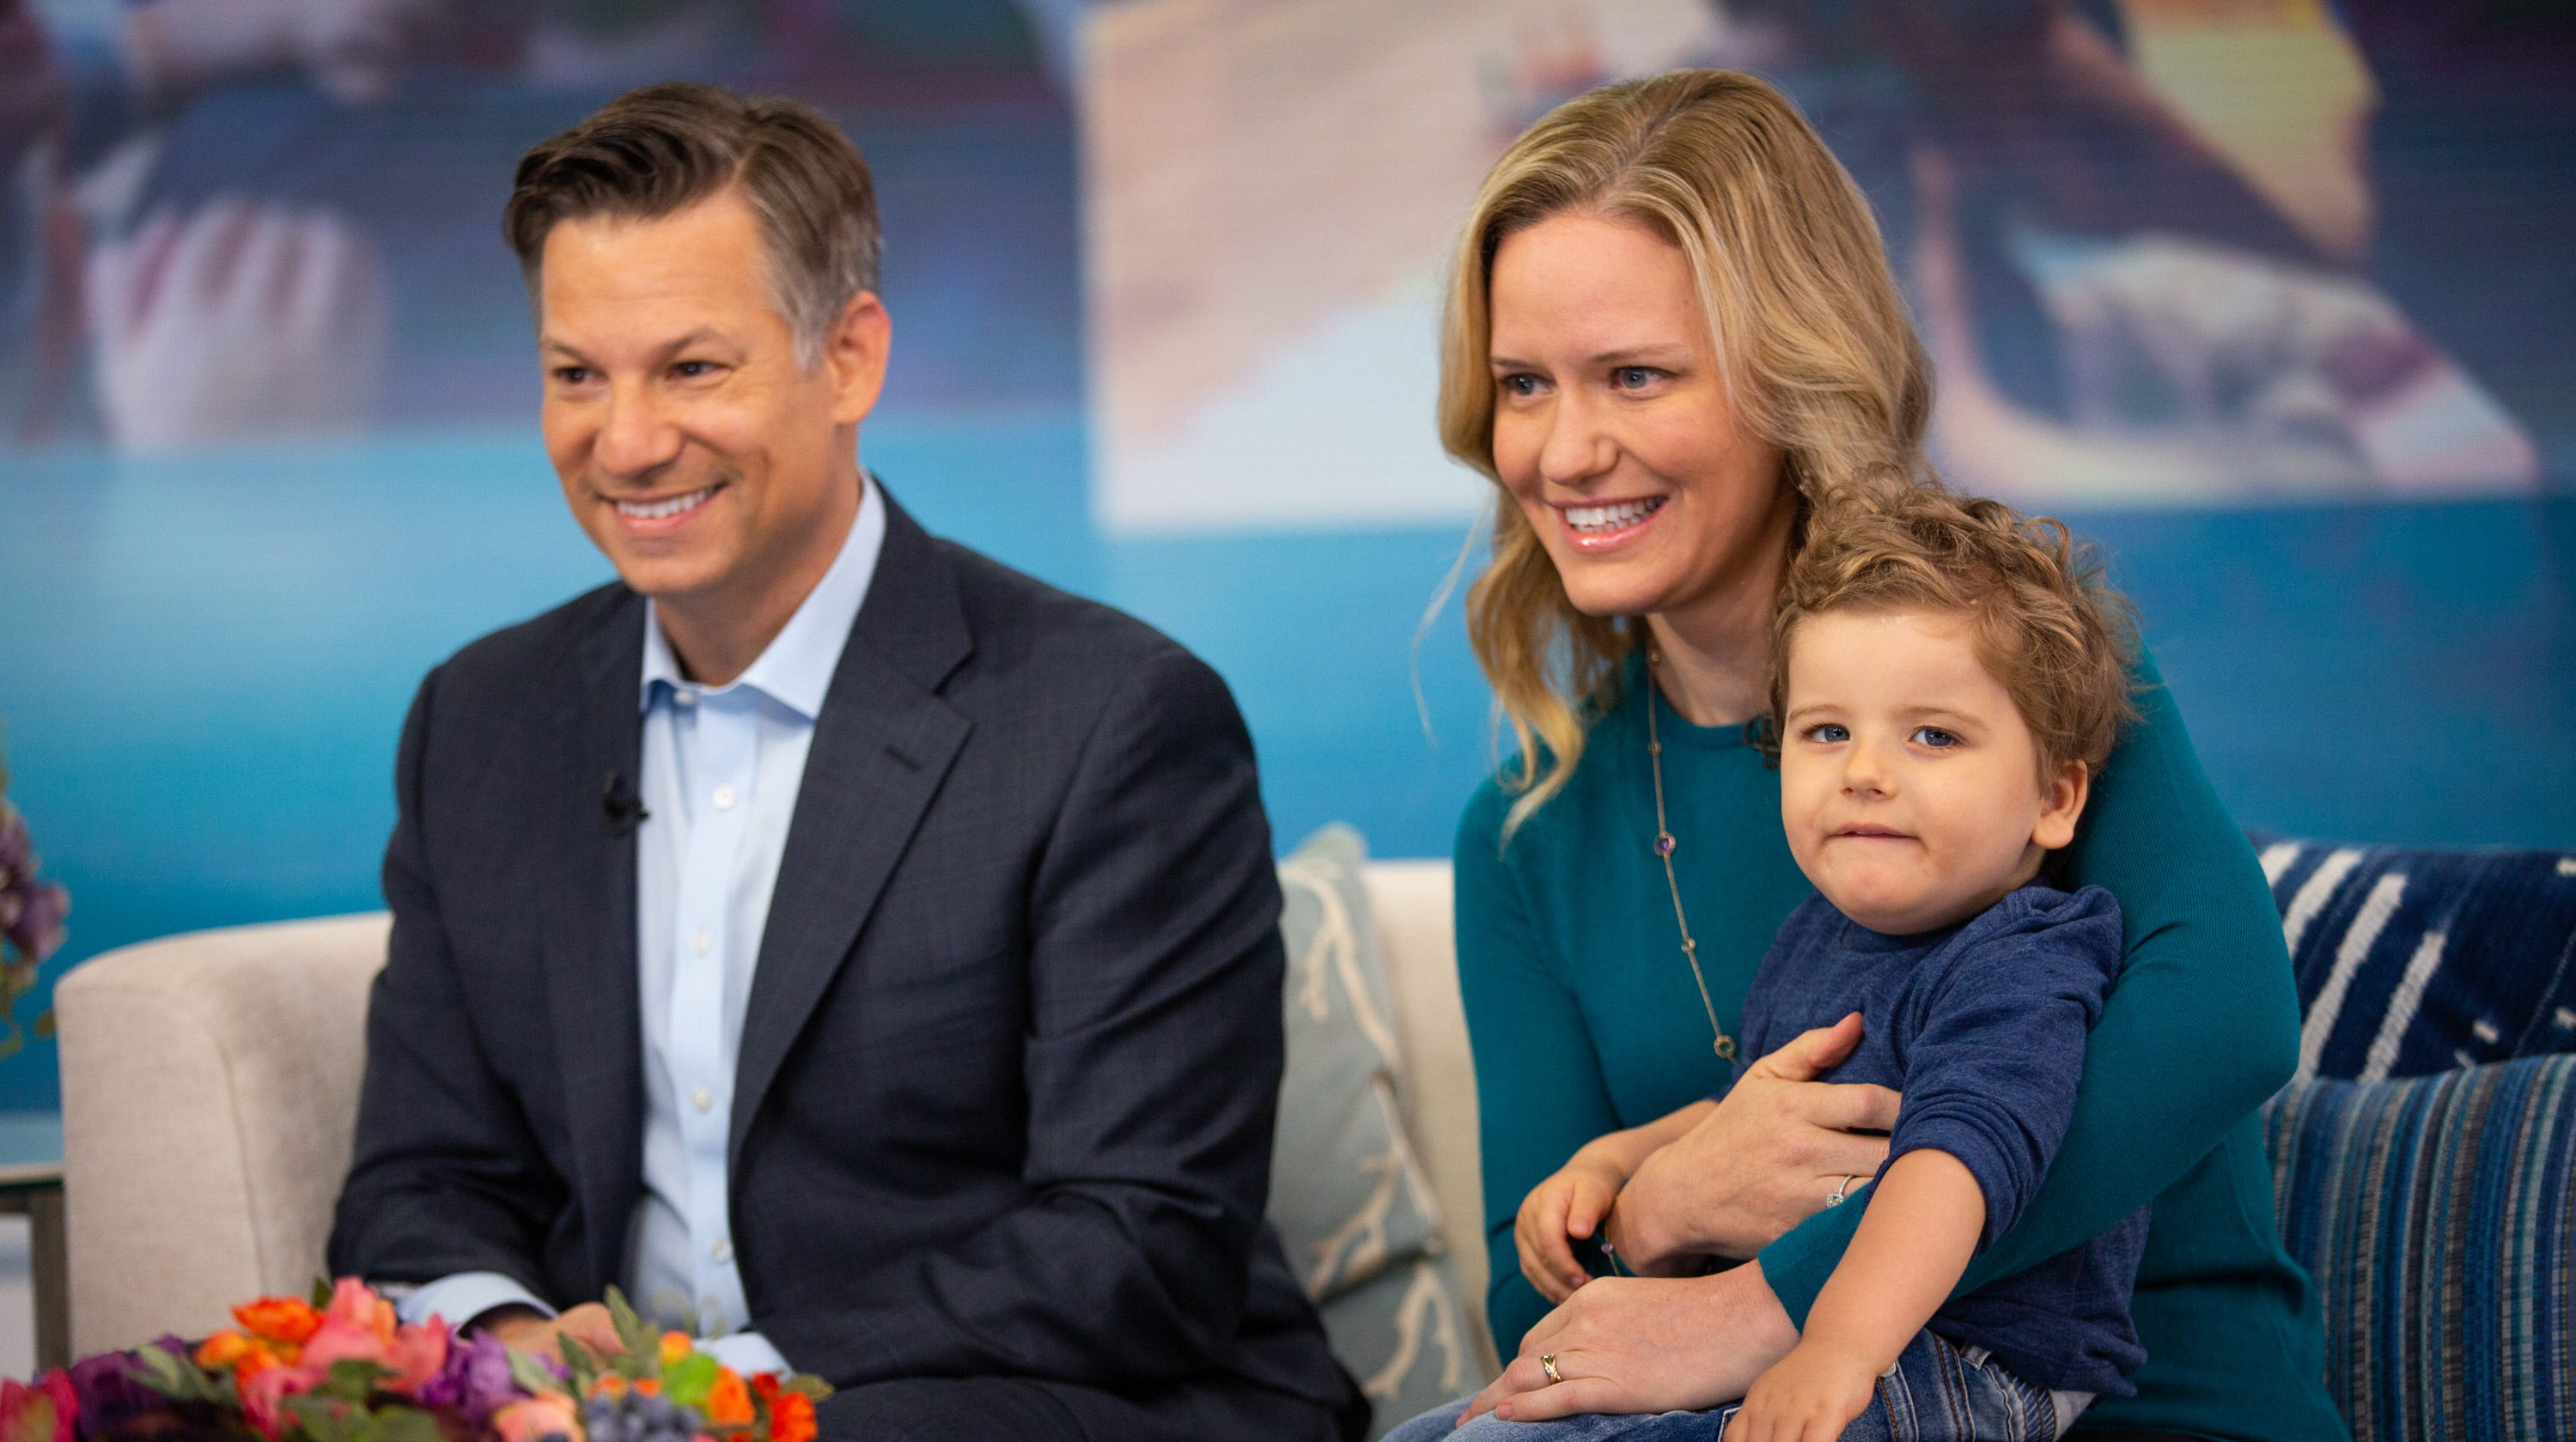 NBC correspondent Richard Engel gets emotional after son with Rett Syndrome says 'Dada'